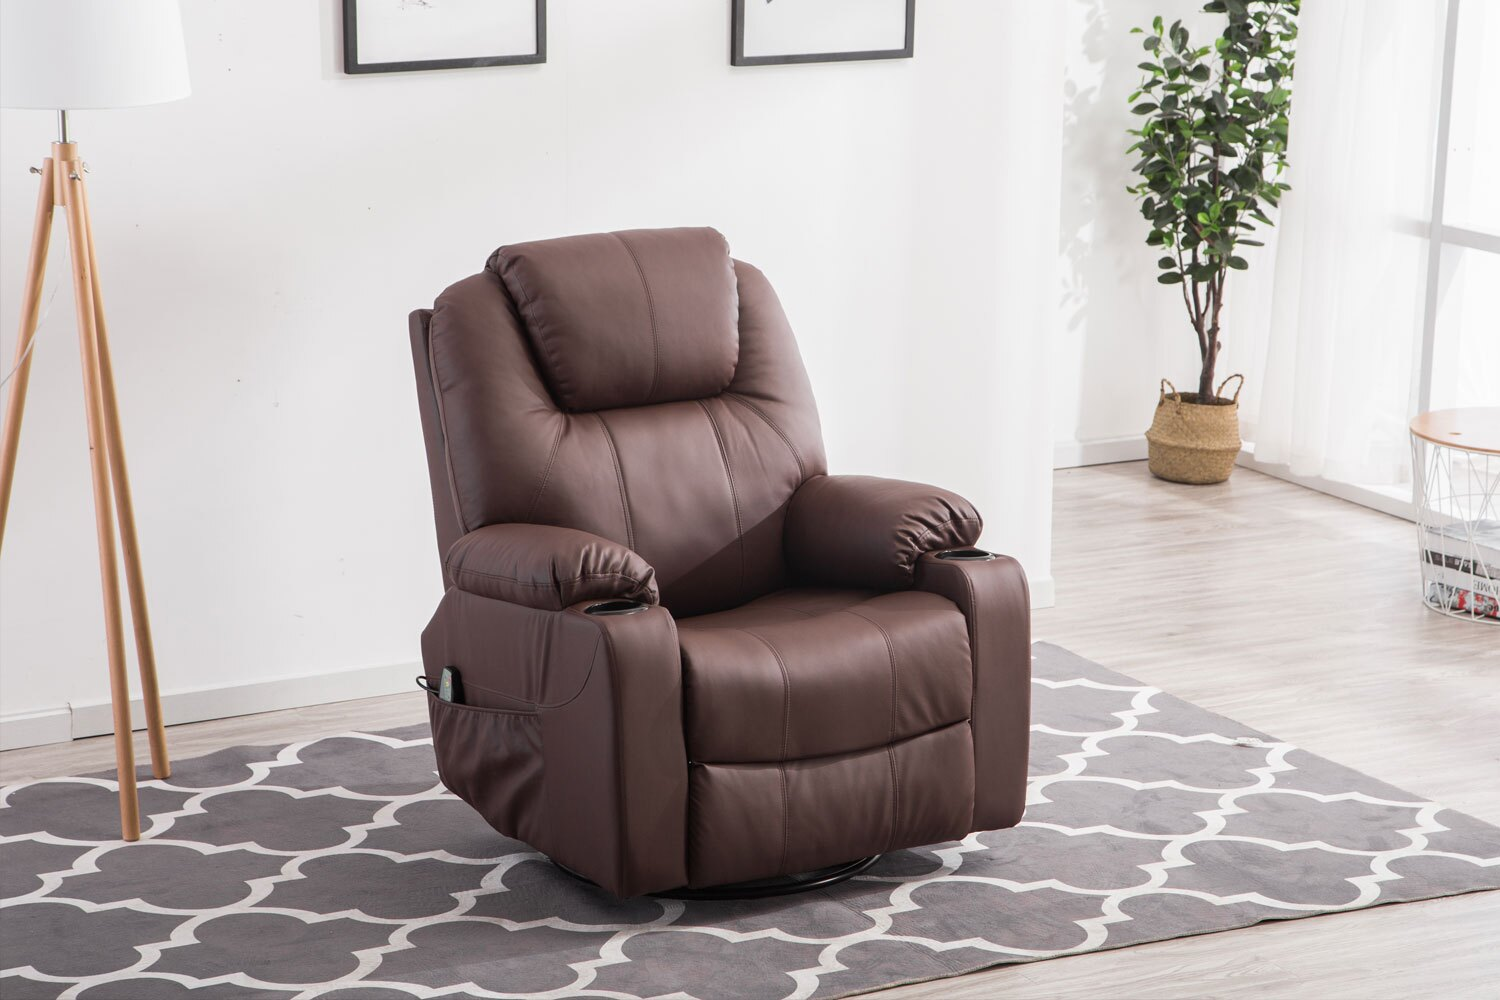 american chairs rec min mkt comfort leather recliner eva done